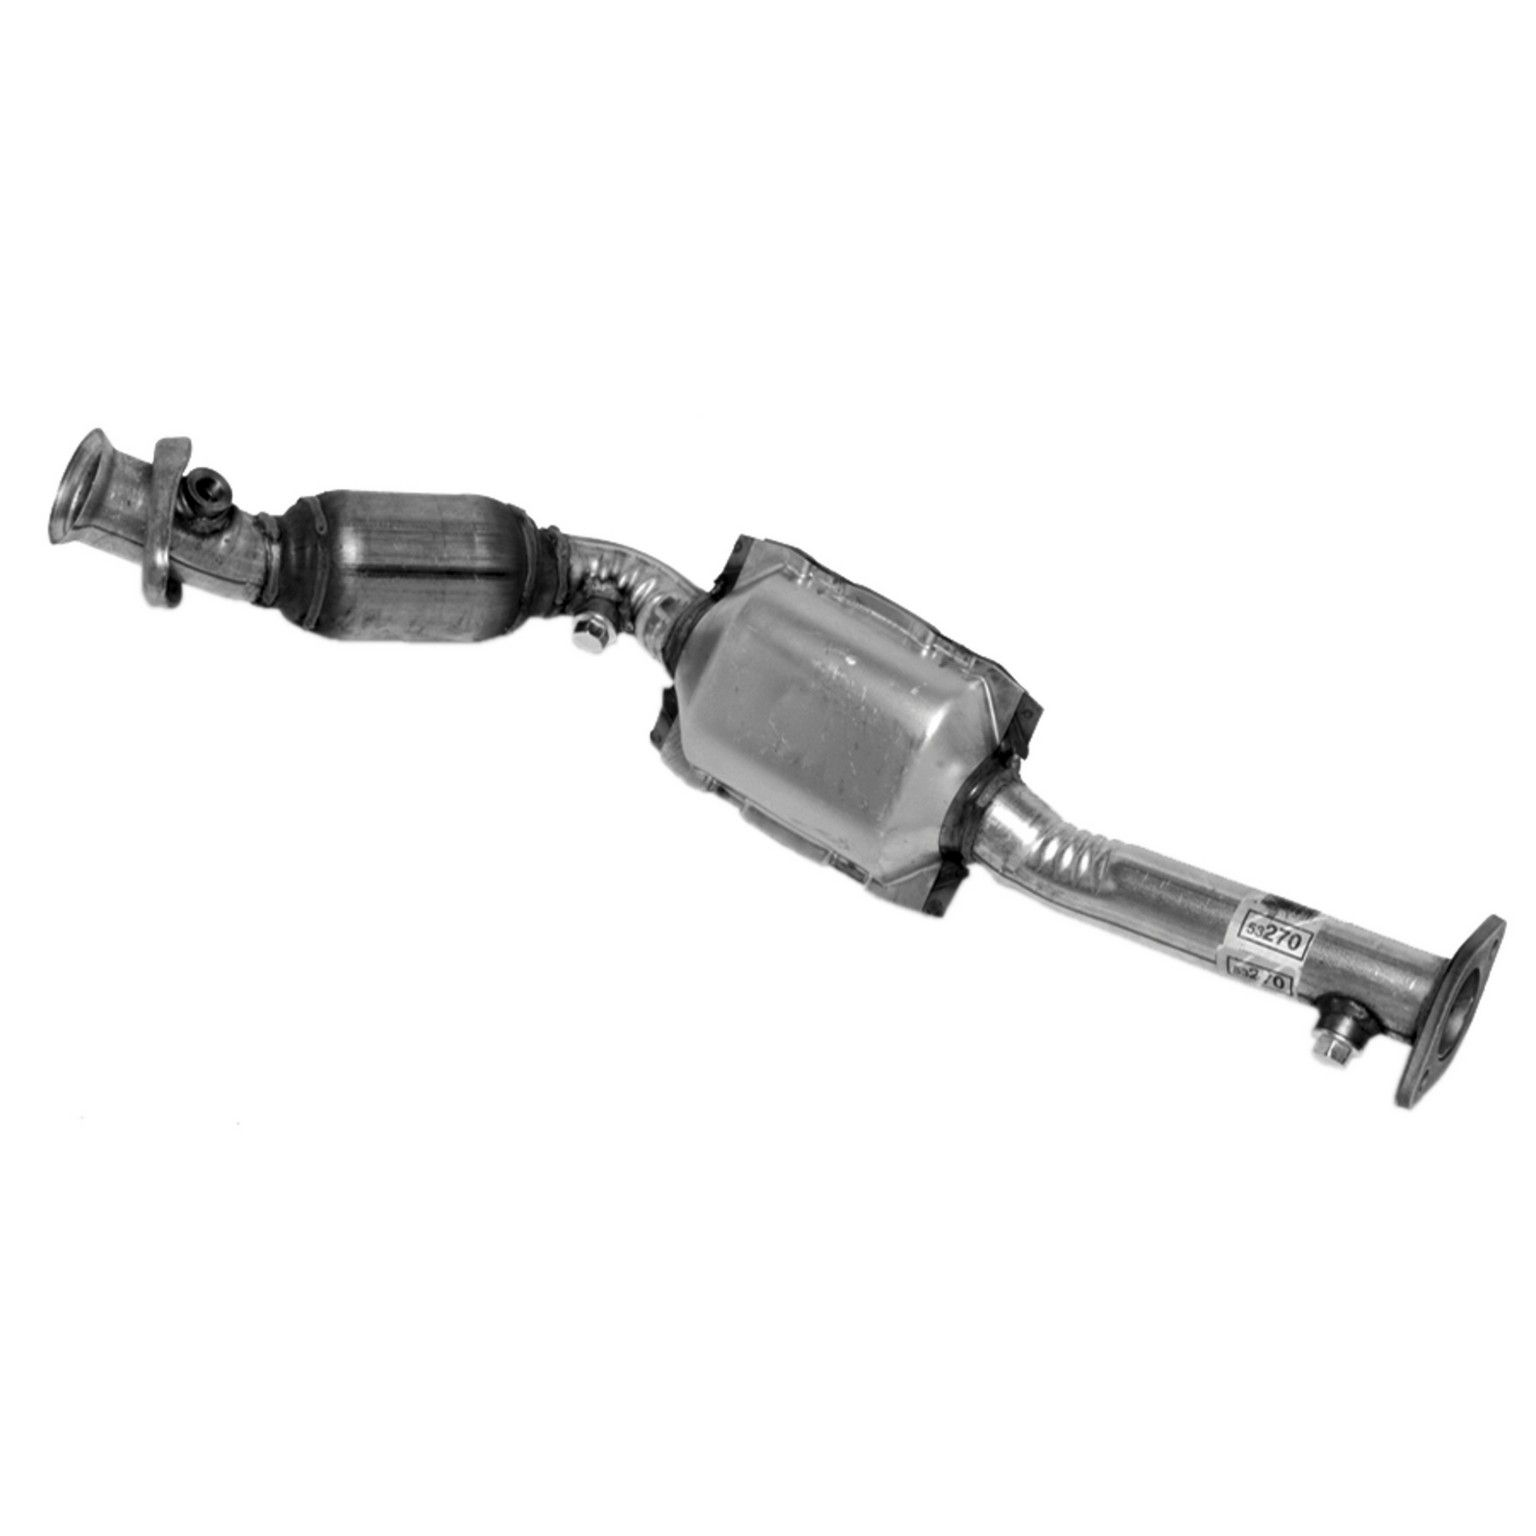 1995 Lincoln Town Car Catalytic Converter Right 8 Cyl 46l Walker 53270 Replaces Both Front Rear Oe Converters Fits Fed Calif Emiss: 2005 Lincoln Town Car Catalytic Converter At Woreks.co